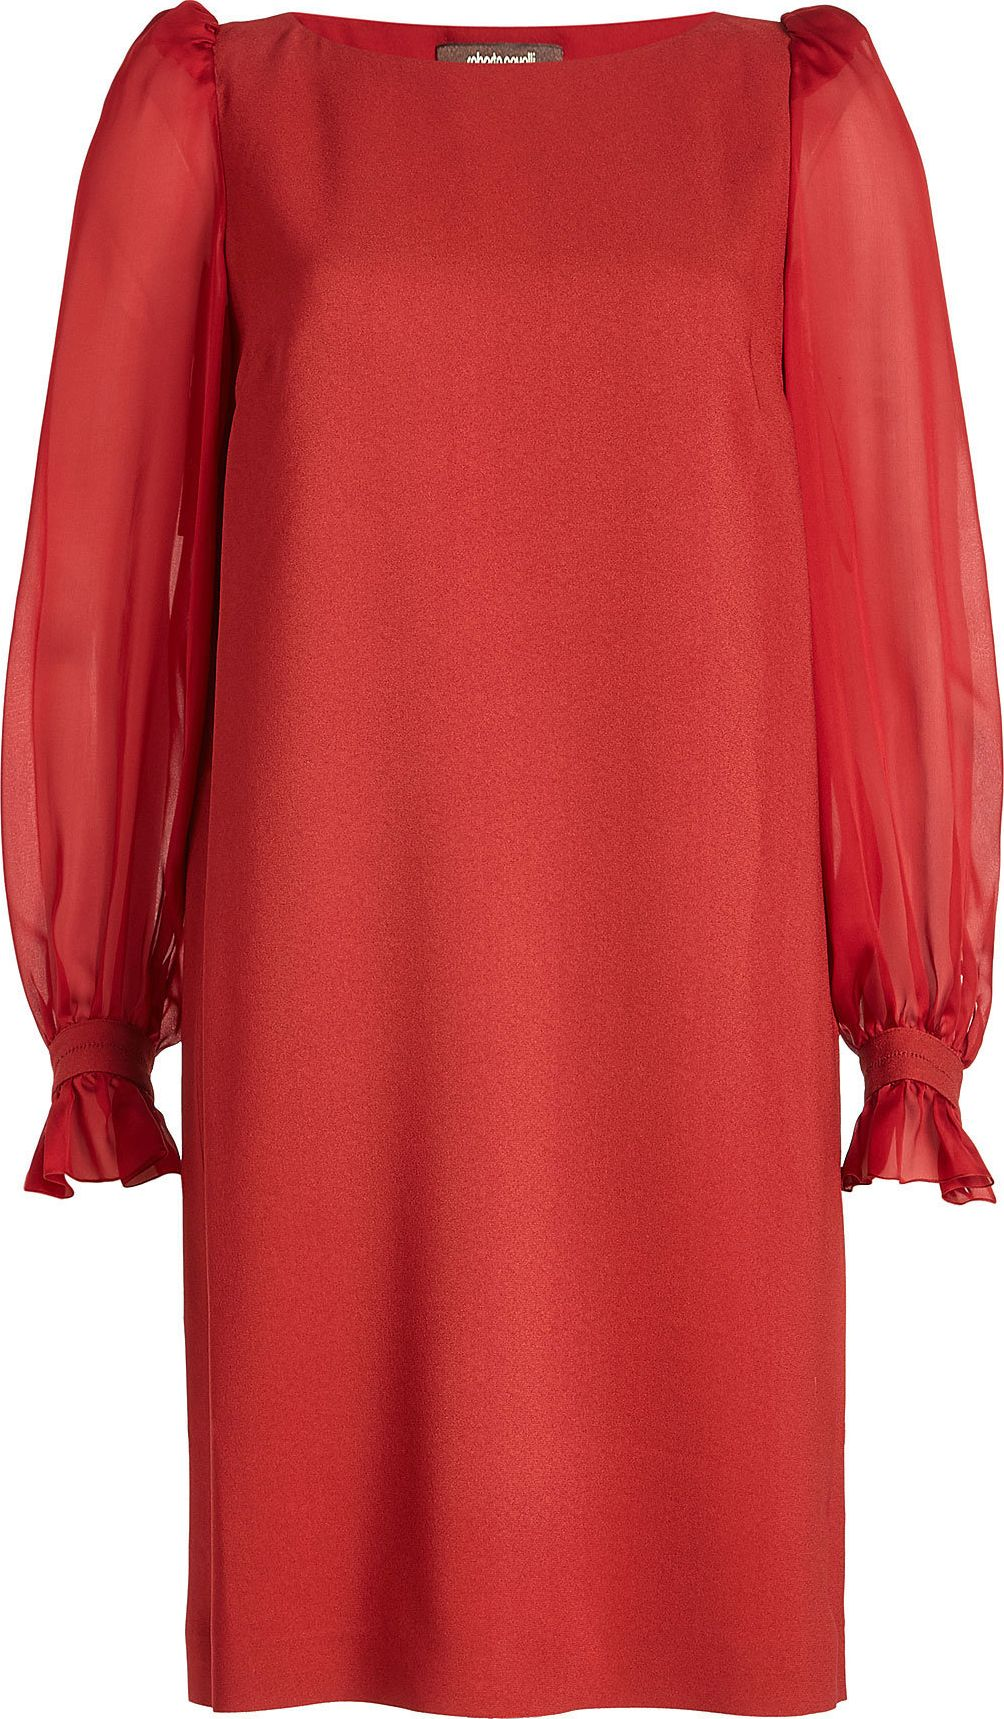 Roberto Cavalli - Dress with Sheer Sleeves